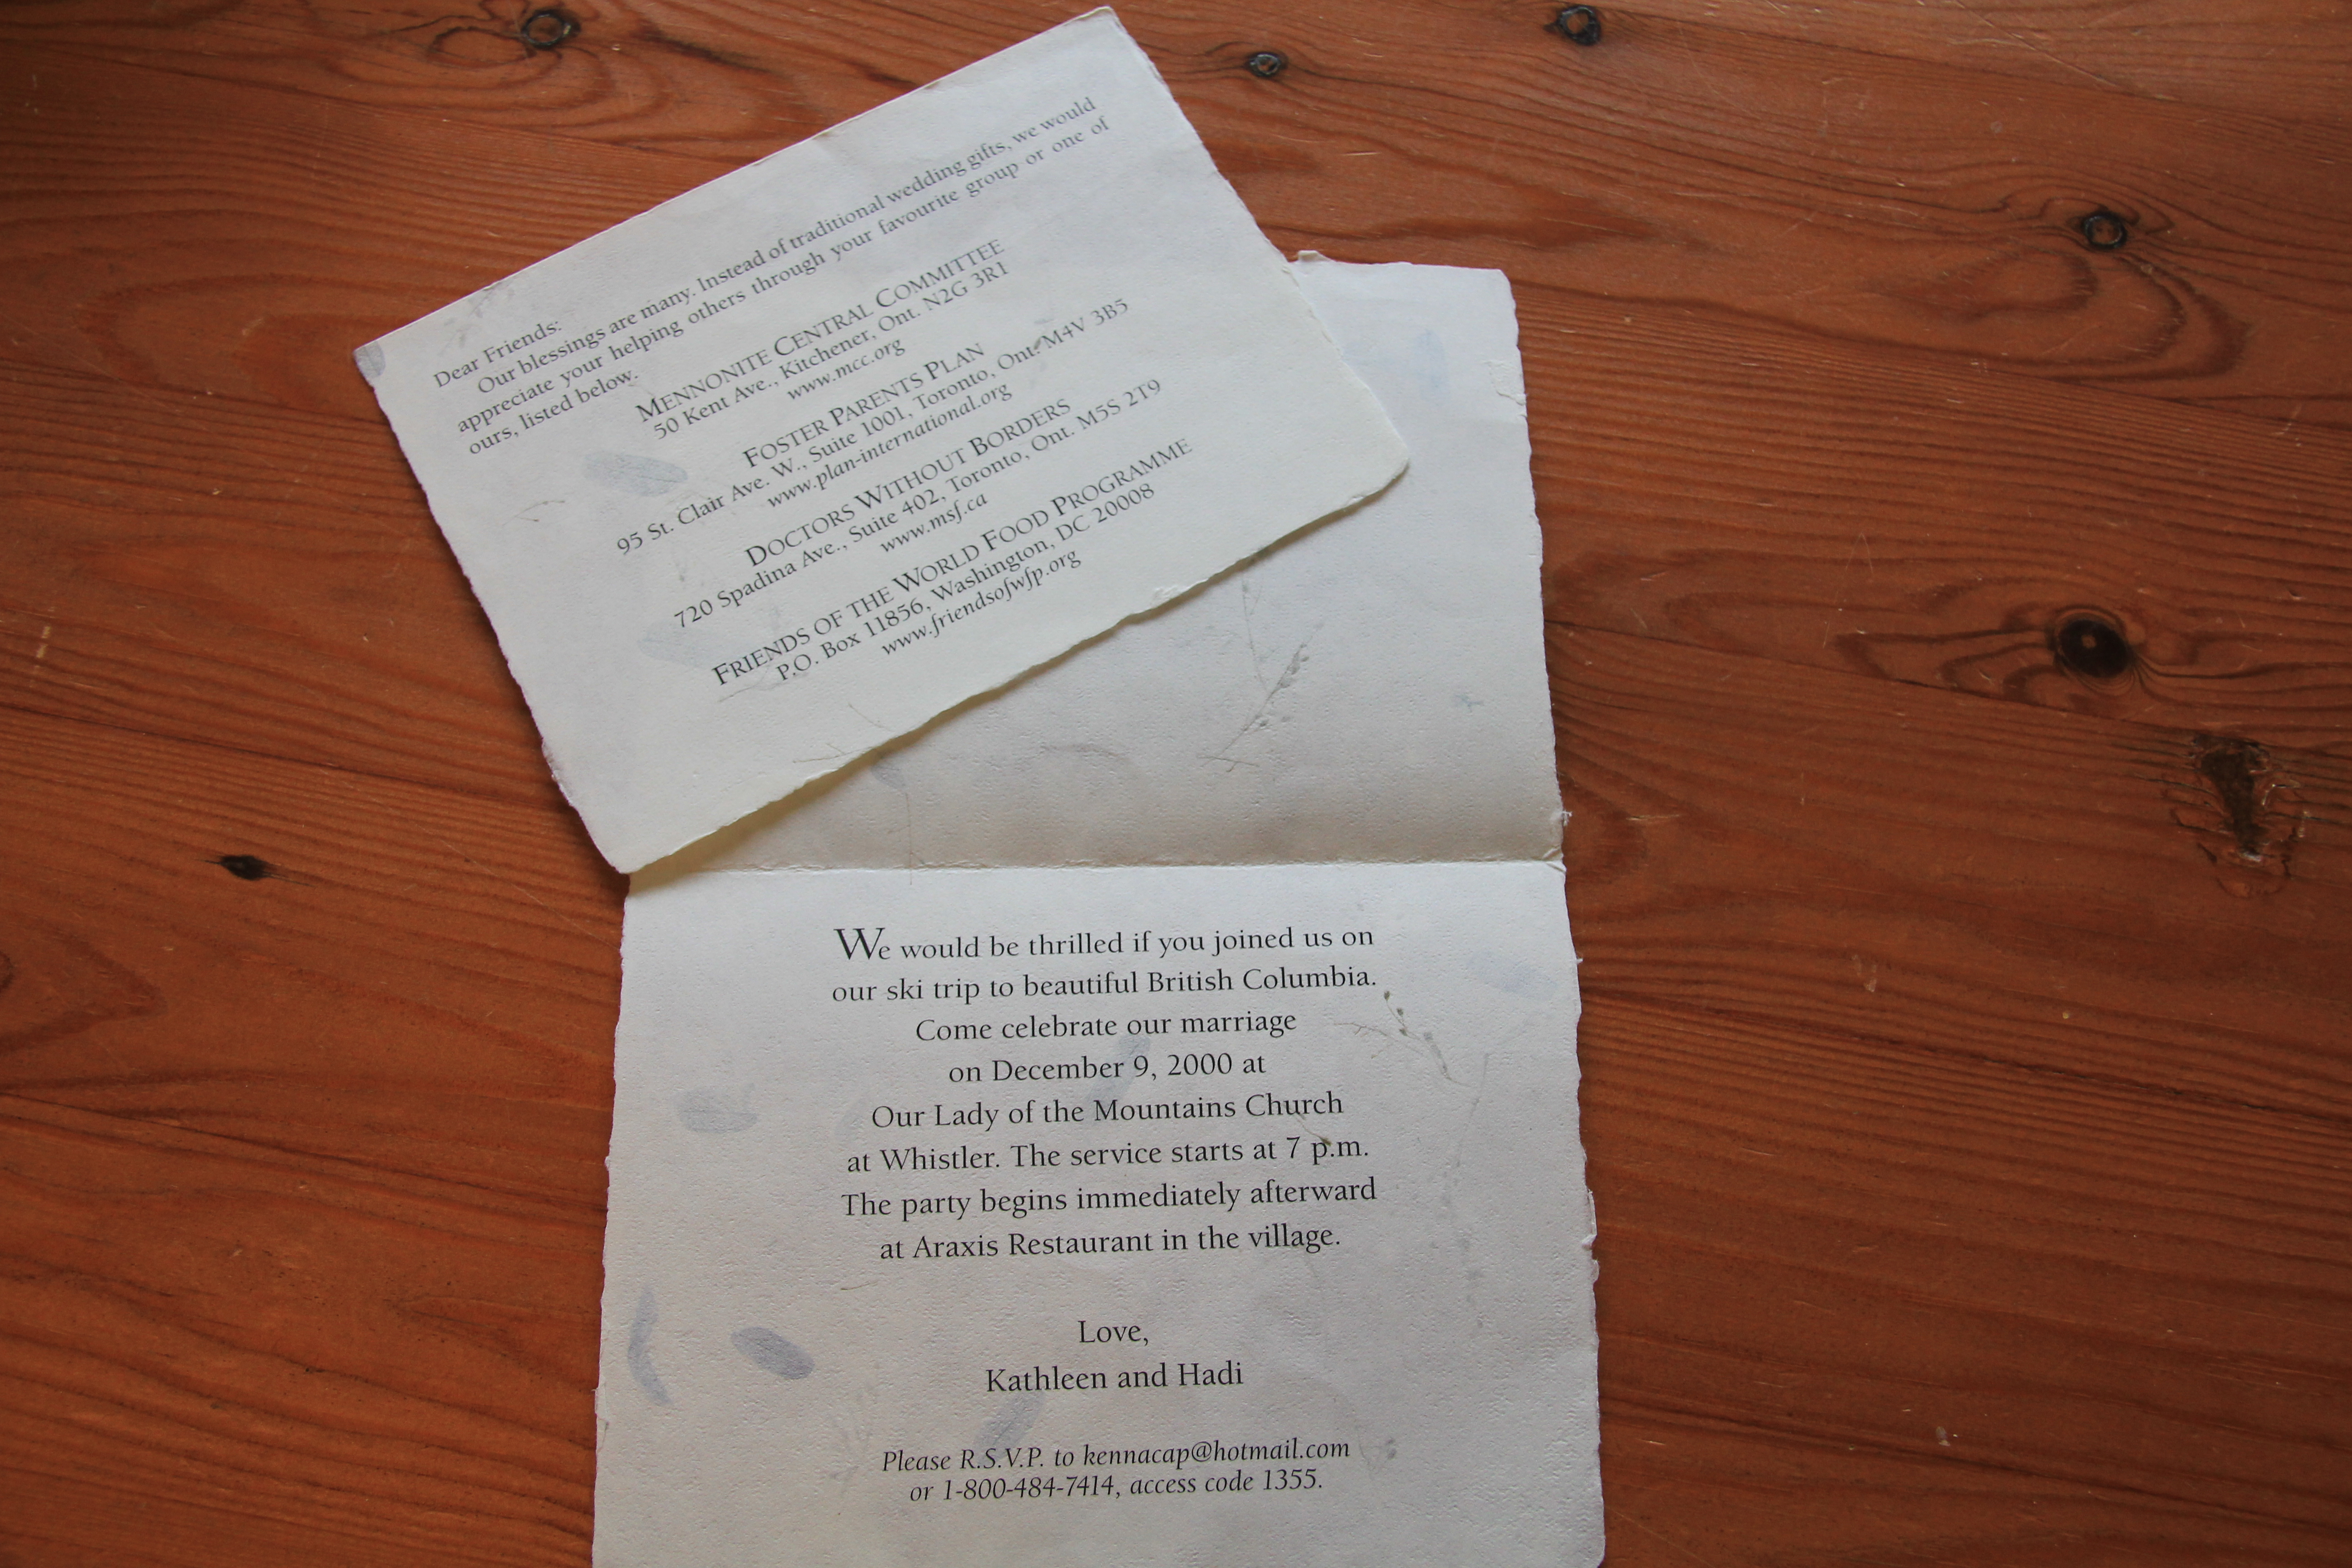 Wedding Invitation Thoughts: Blessings, A Wedding Invite, And Thoughts On Giving At